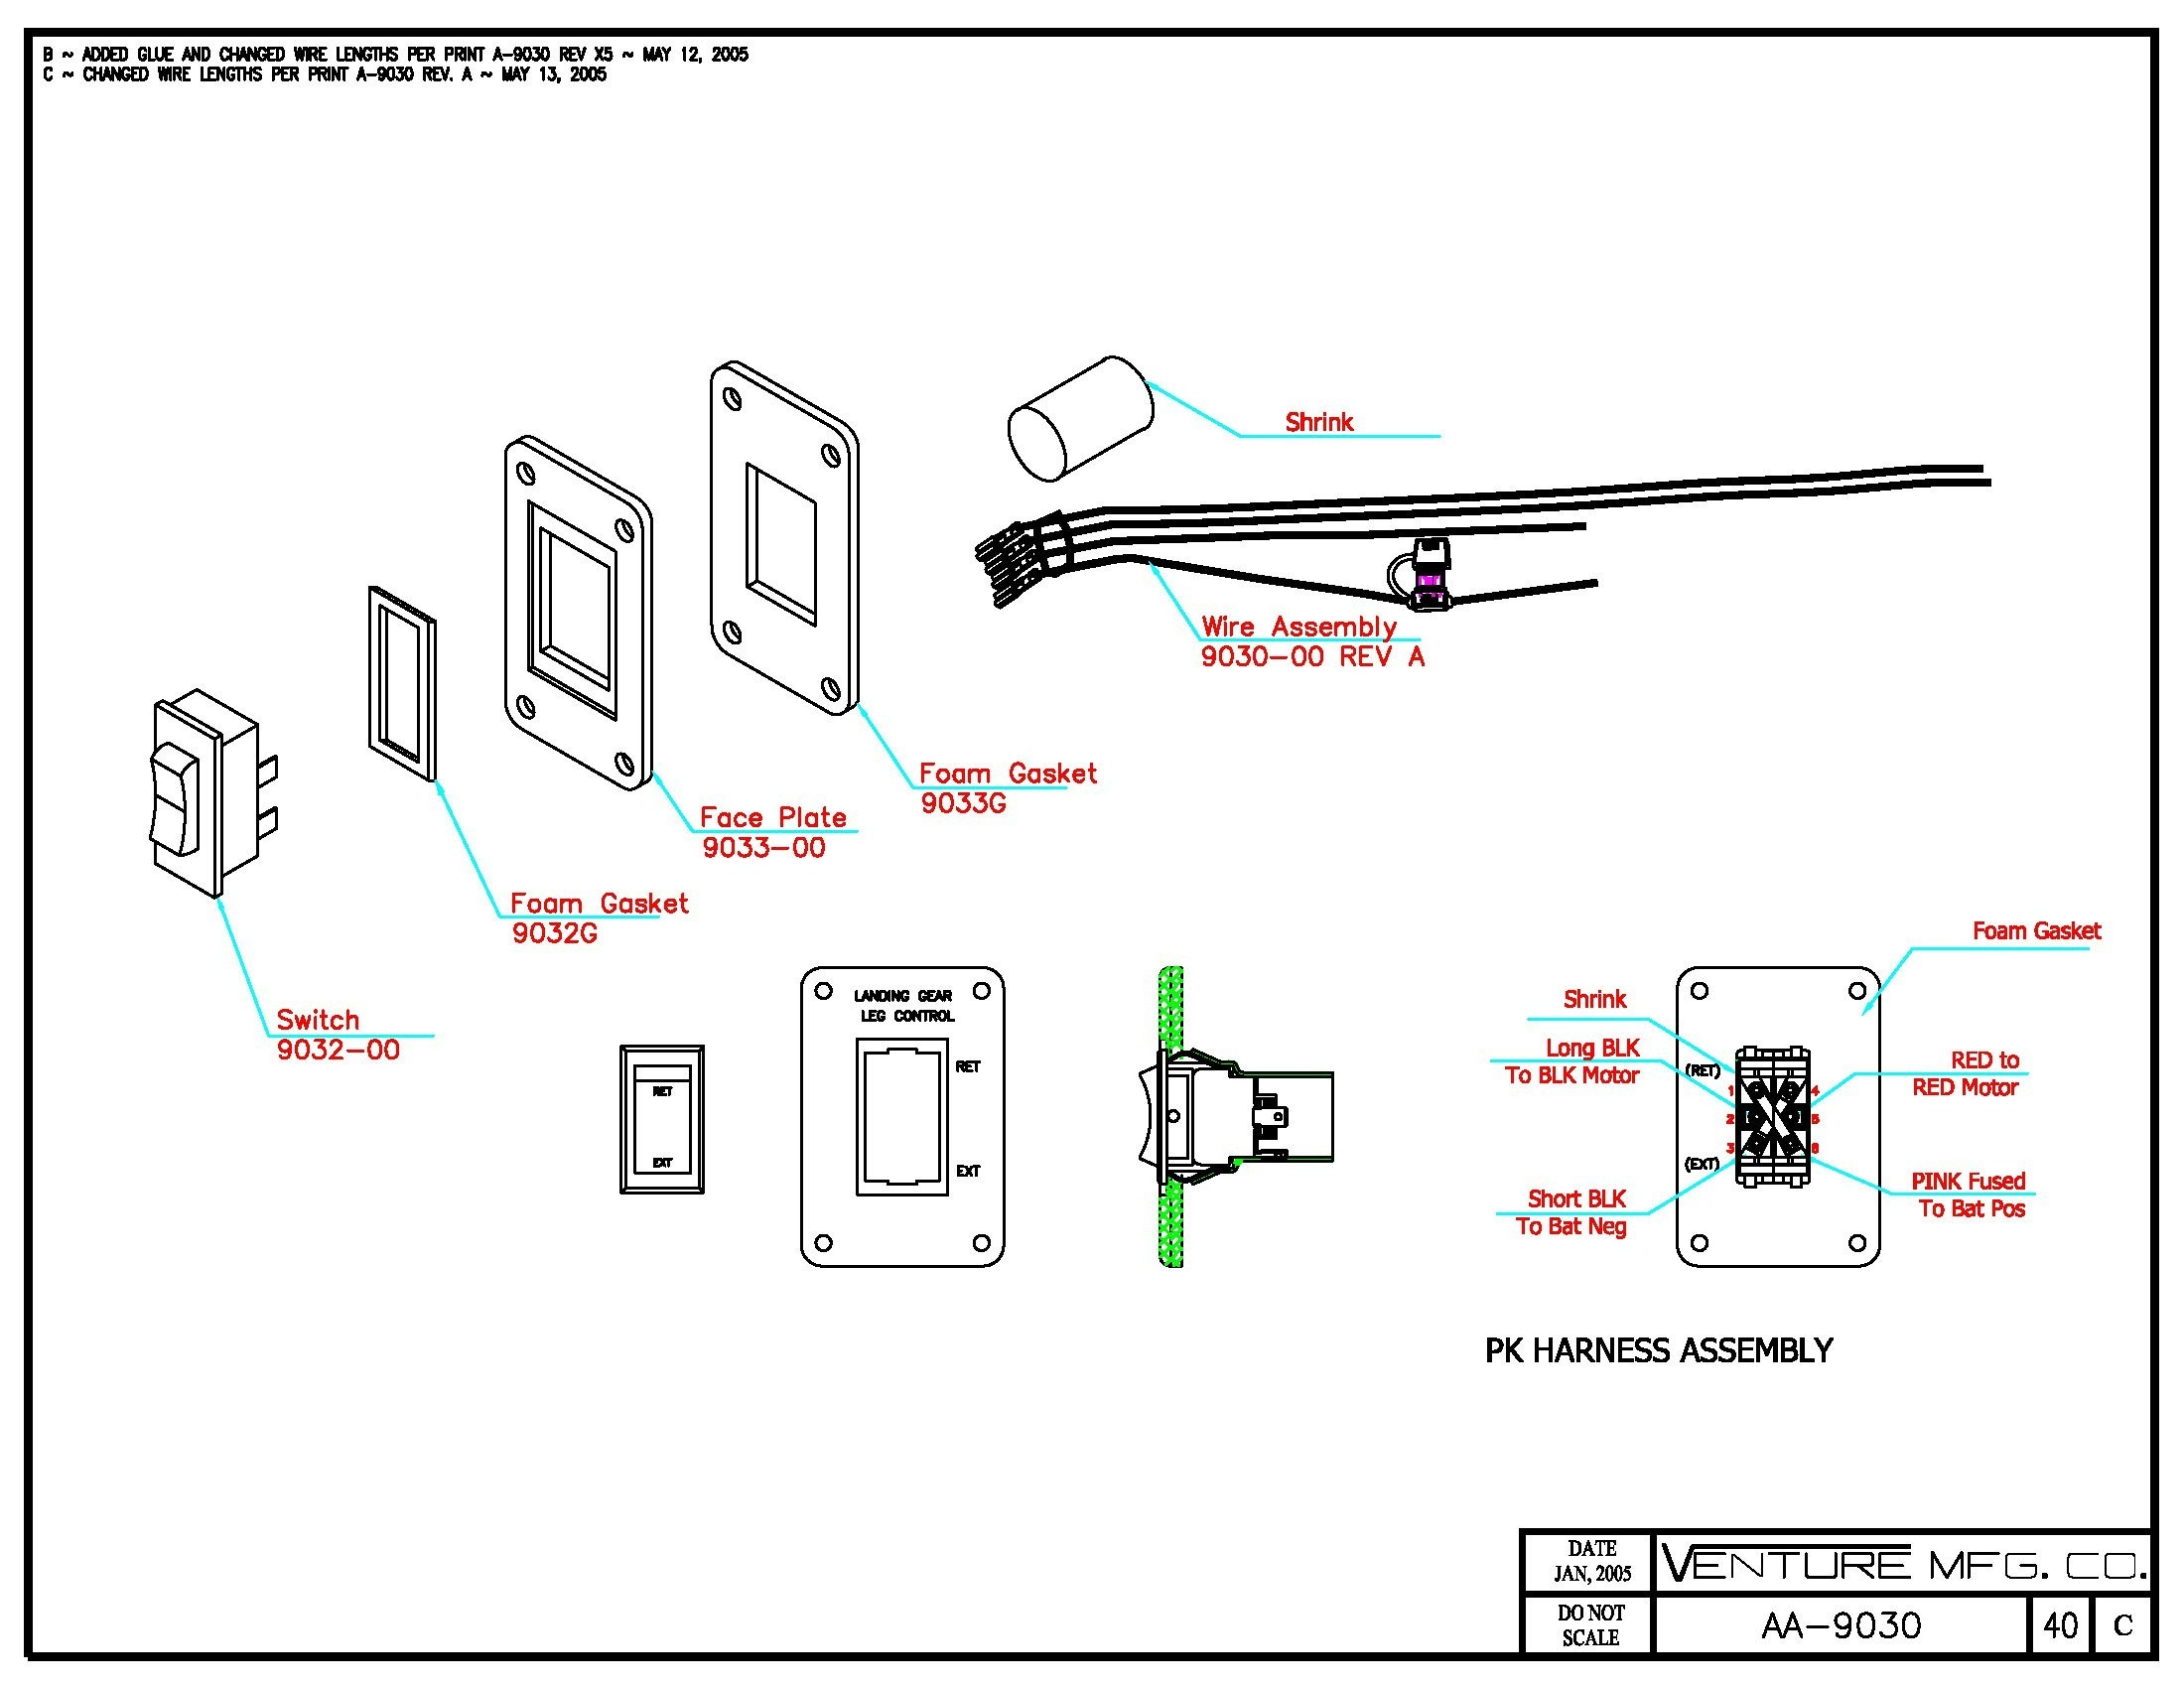 spartan chassi motorhome wiring diagram spartan chassis wiring Workhorse Wiring Diagrams hight resolution of spartan force wiring diagram wiring library spartan waterous wiring diagrams hwh slide out